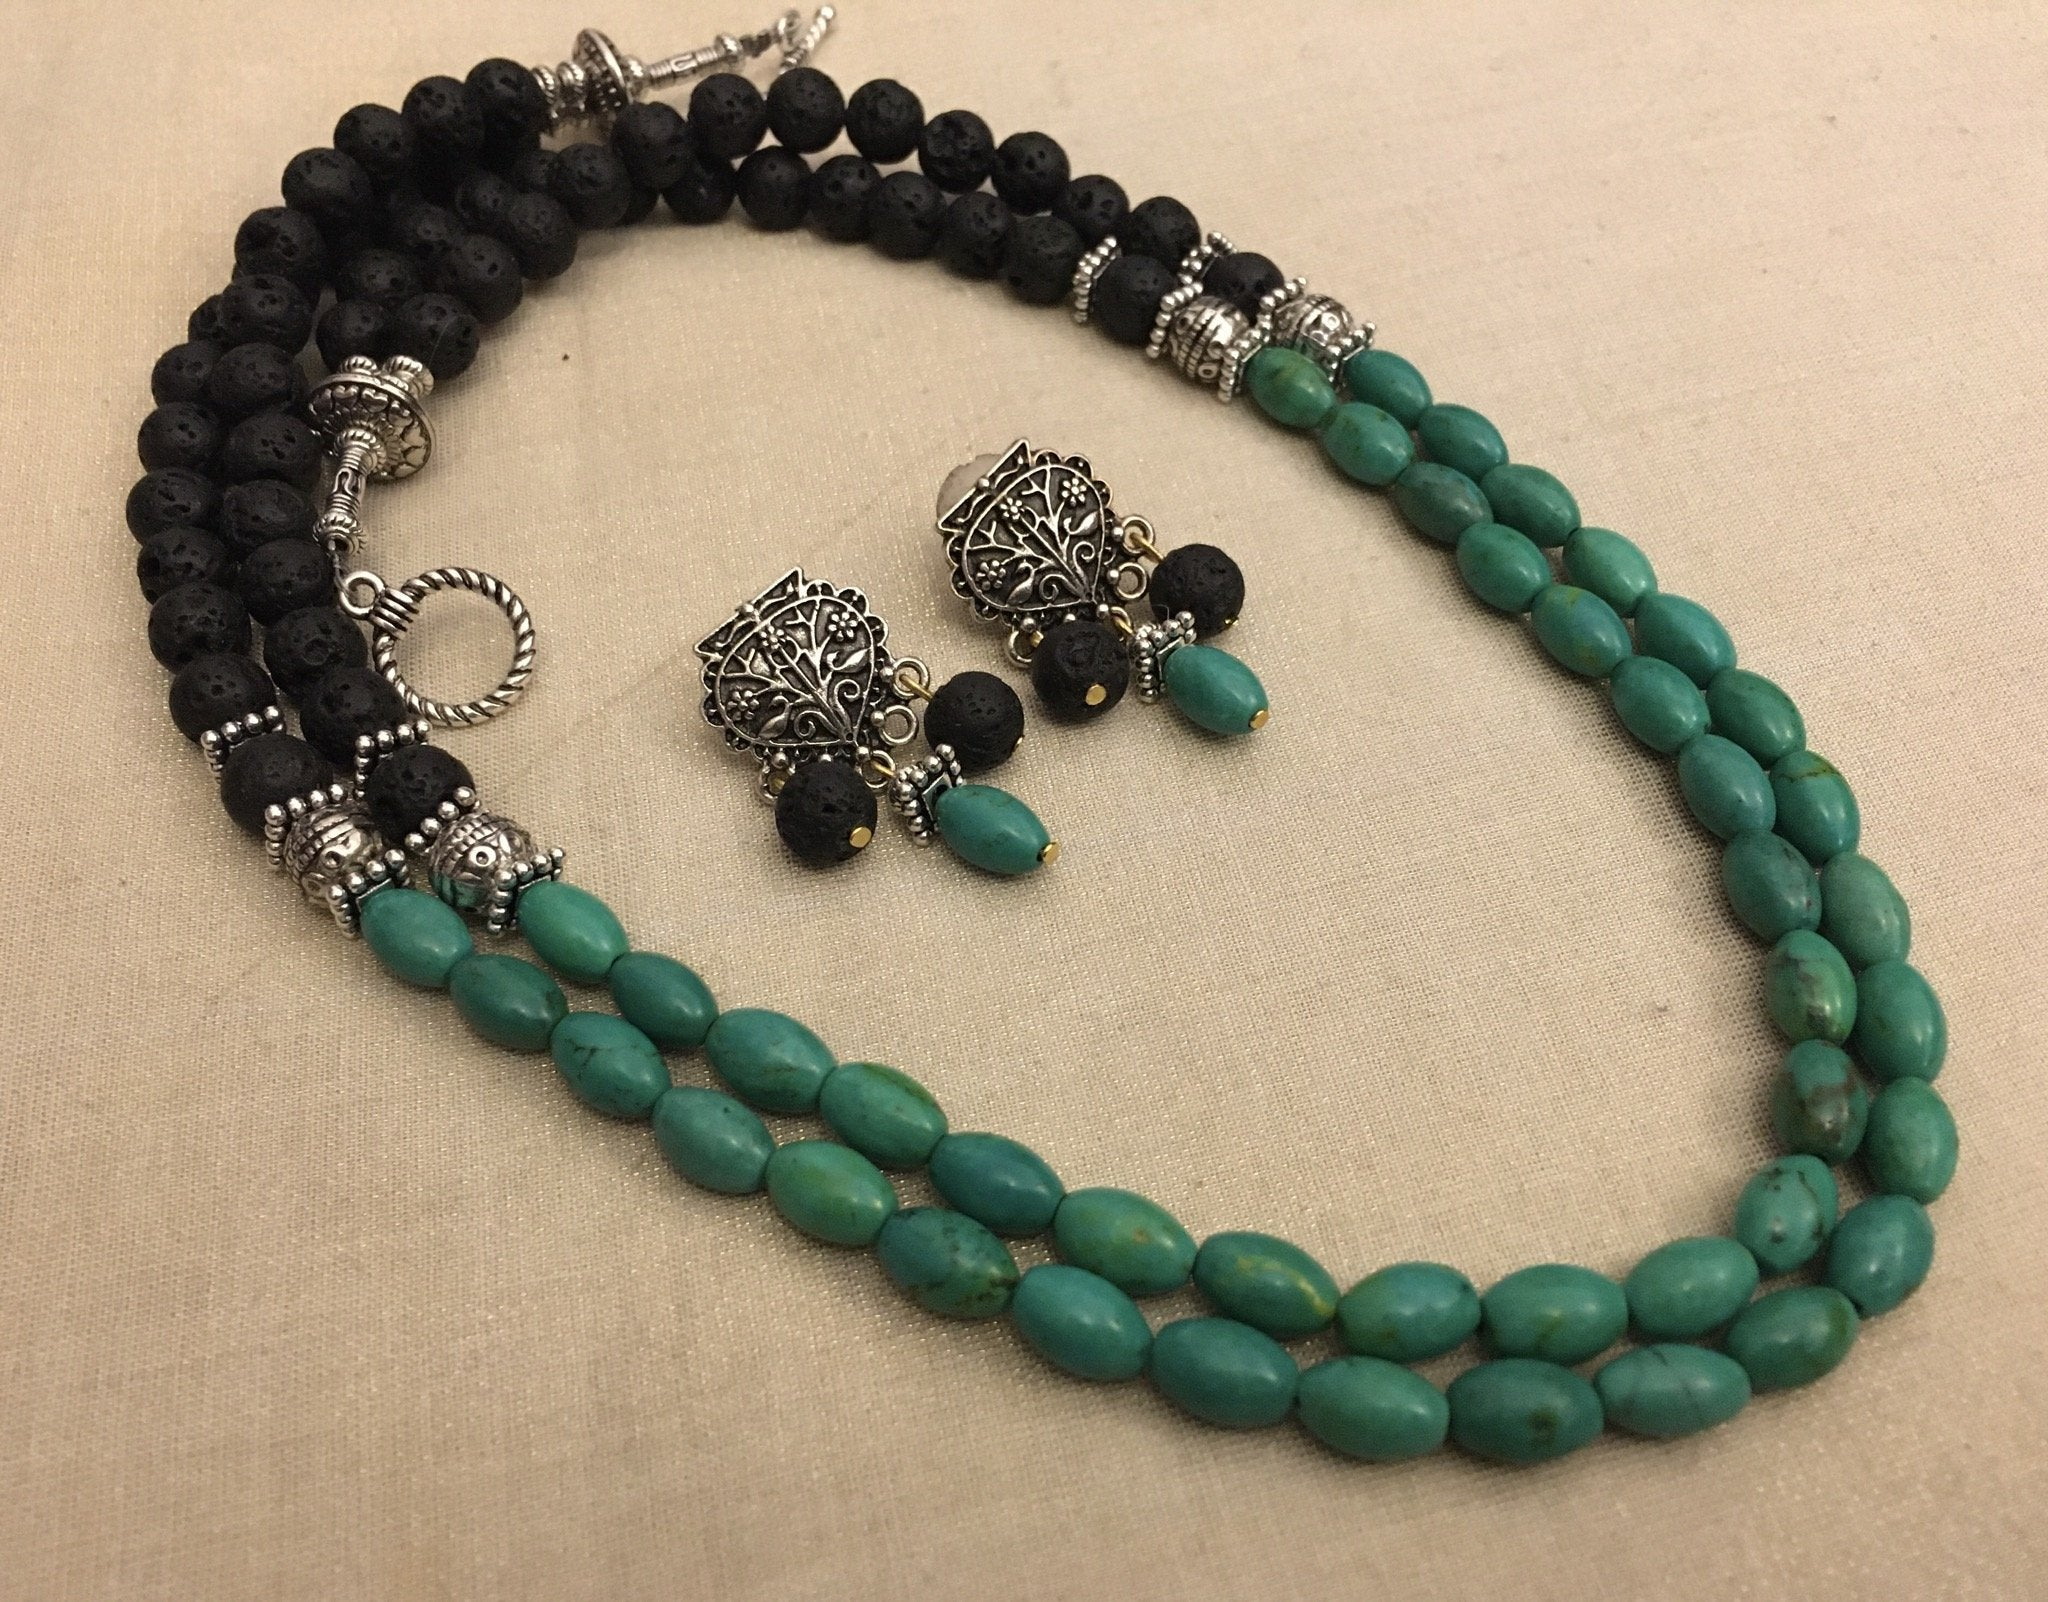 Silver Plated Double Layered Black Color Lava Beads And Turquoise Color Chrysocolla Beads Necklace Set By Jewel Box